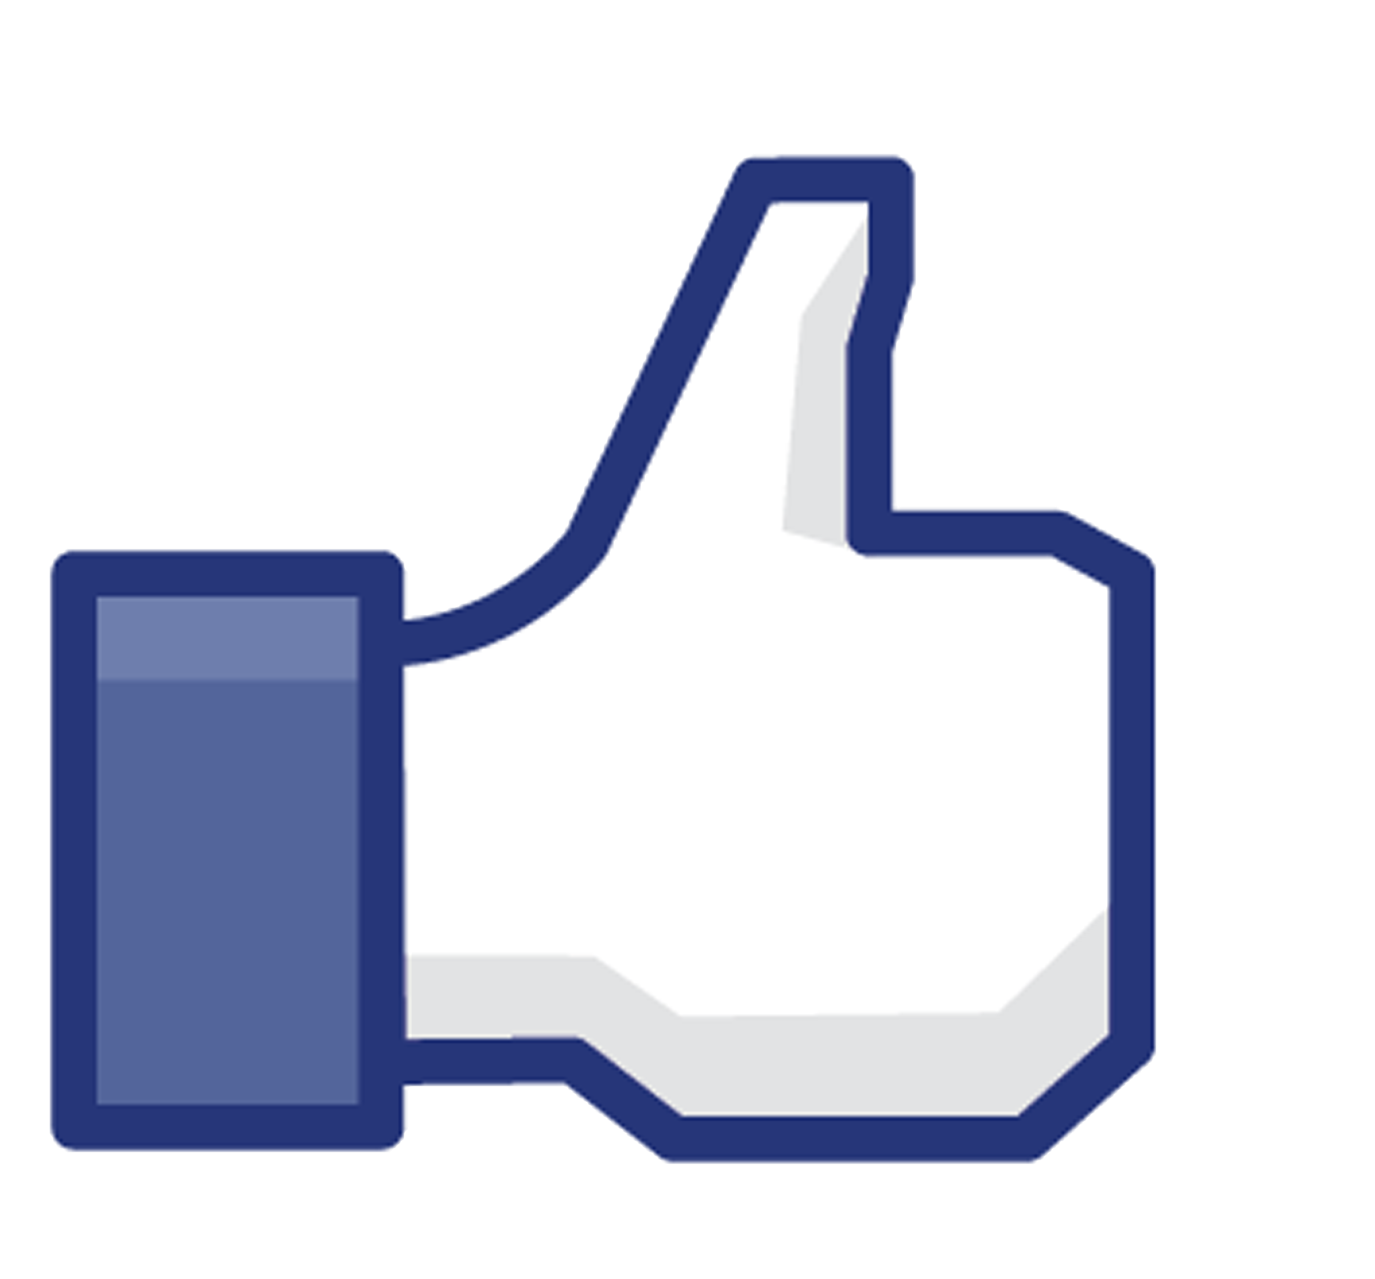 Facebook clipart thumbnail. Png transparent images all